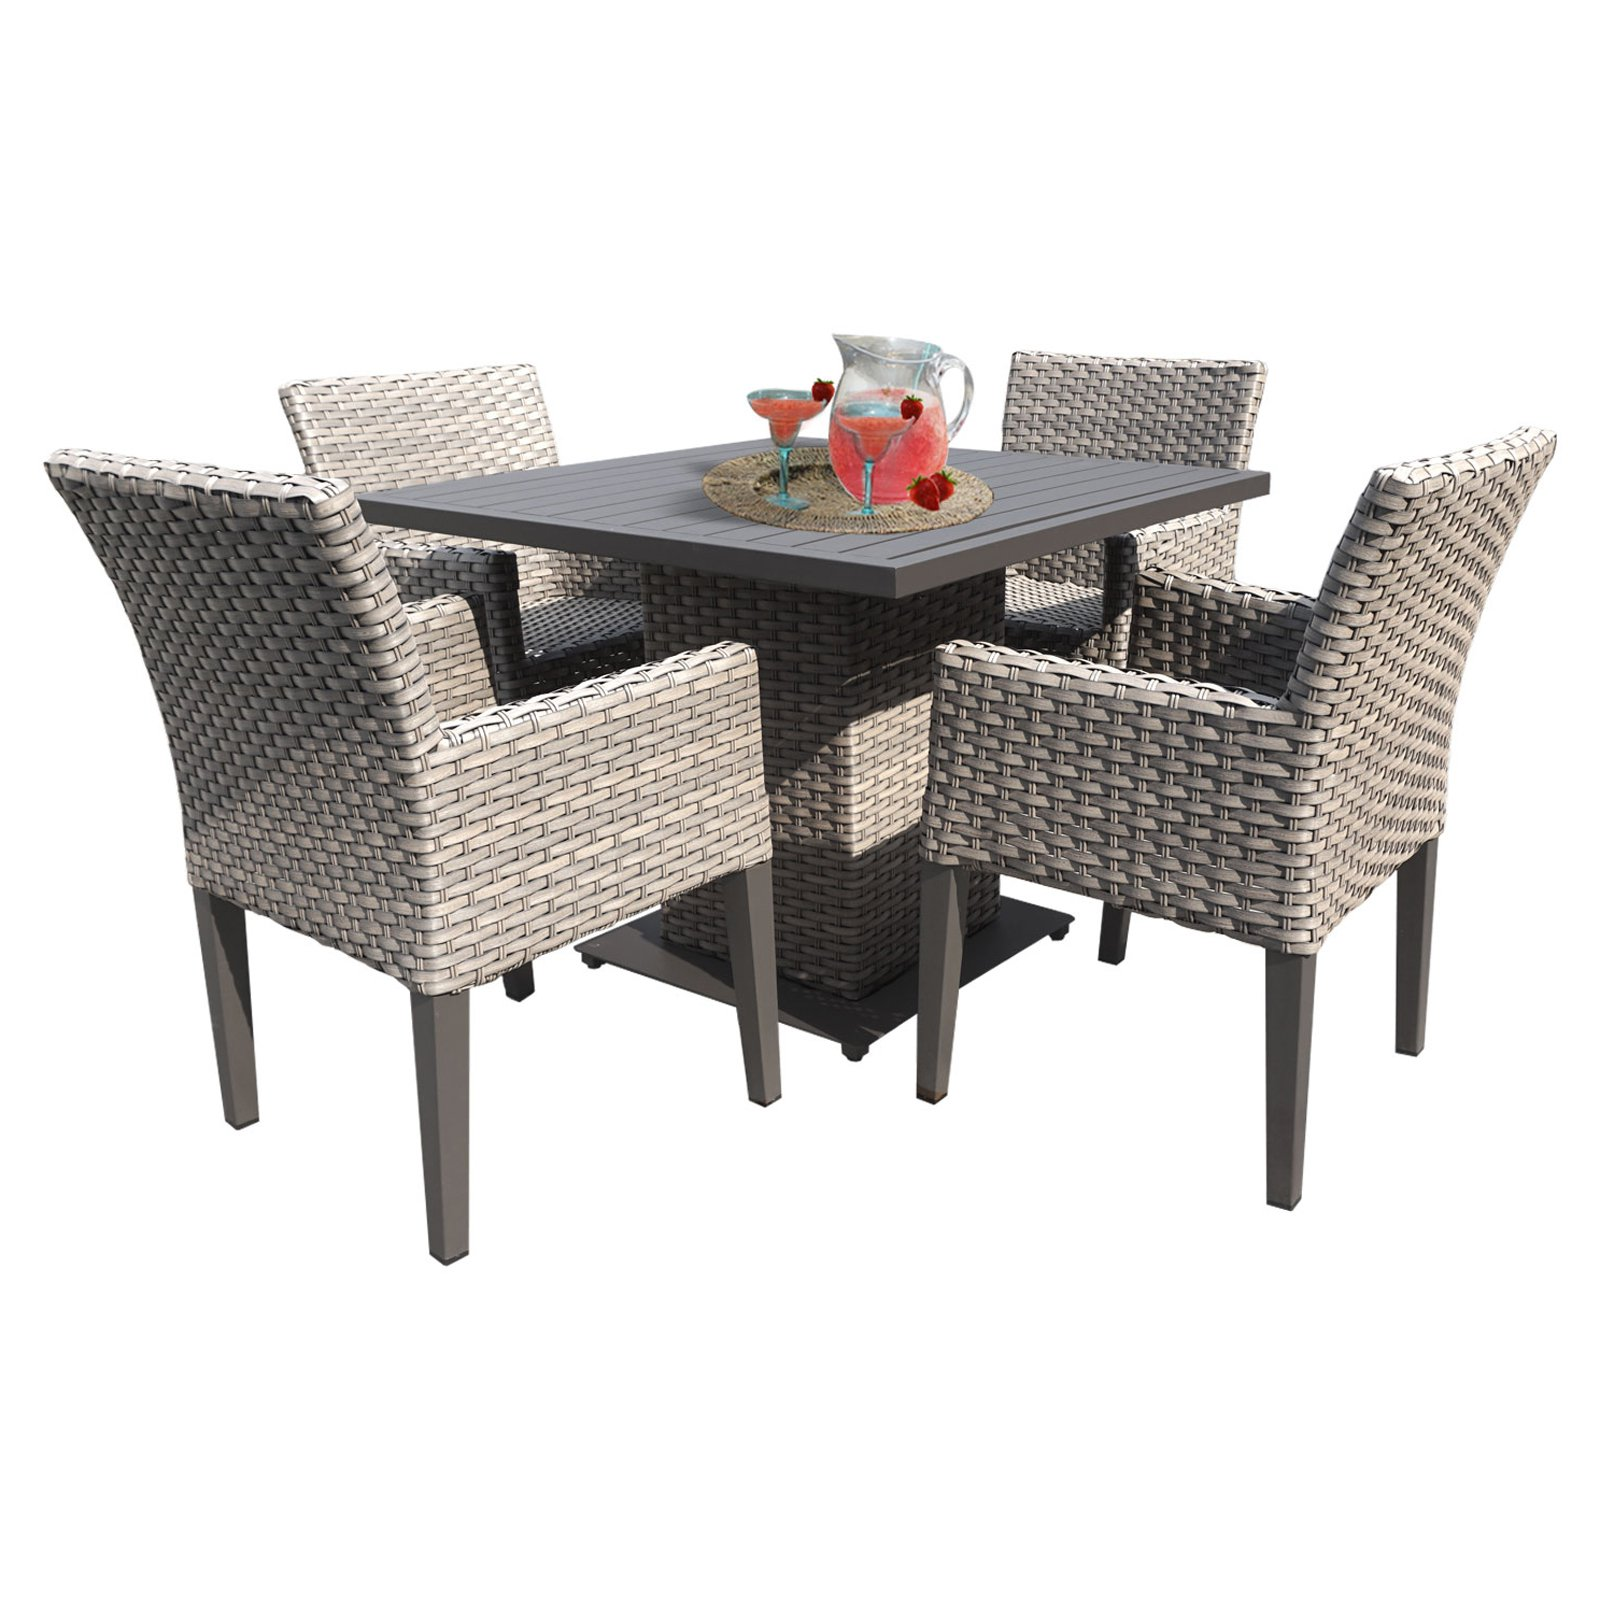 TK Classics Florence All Weather Wicker 5 Piece Patio Dining Table Set with Arm Chairs